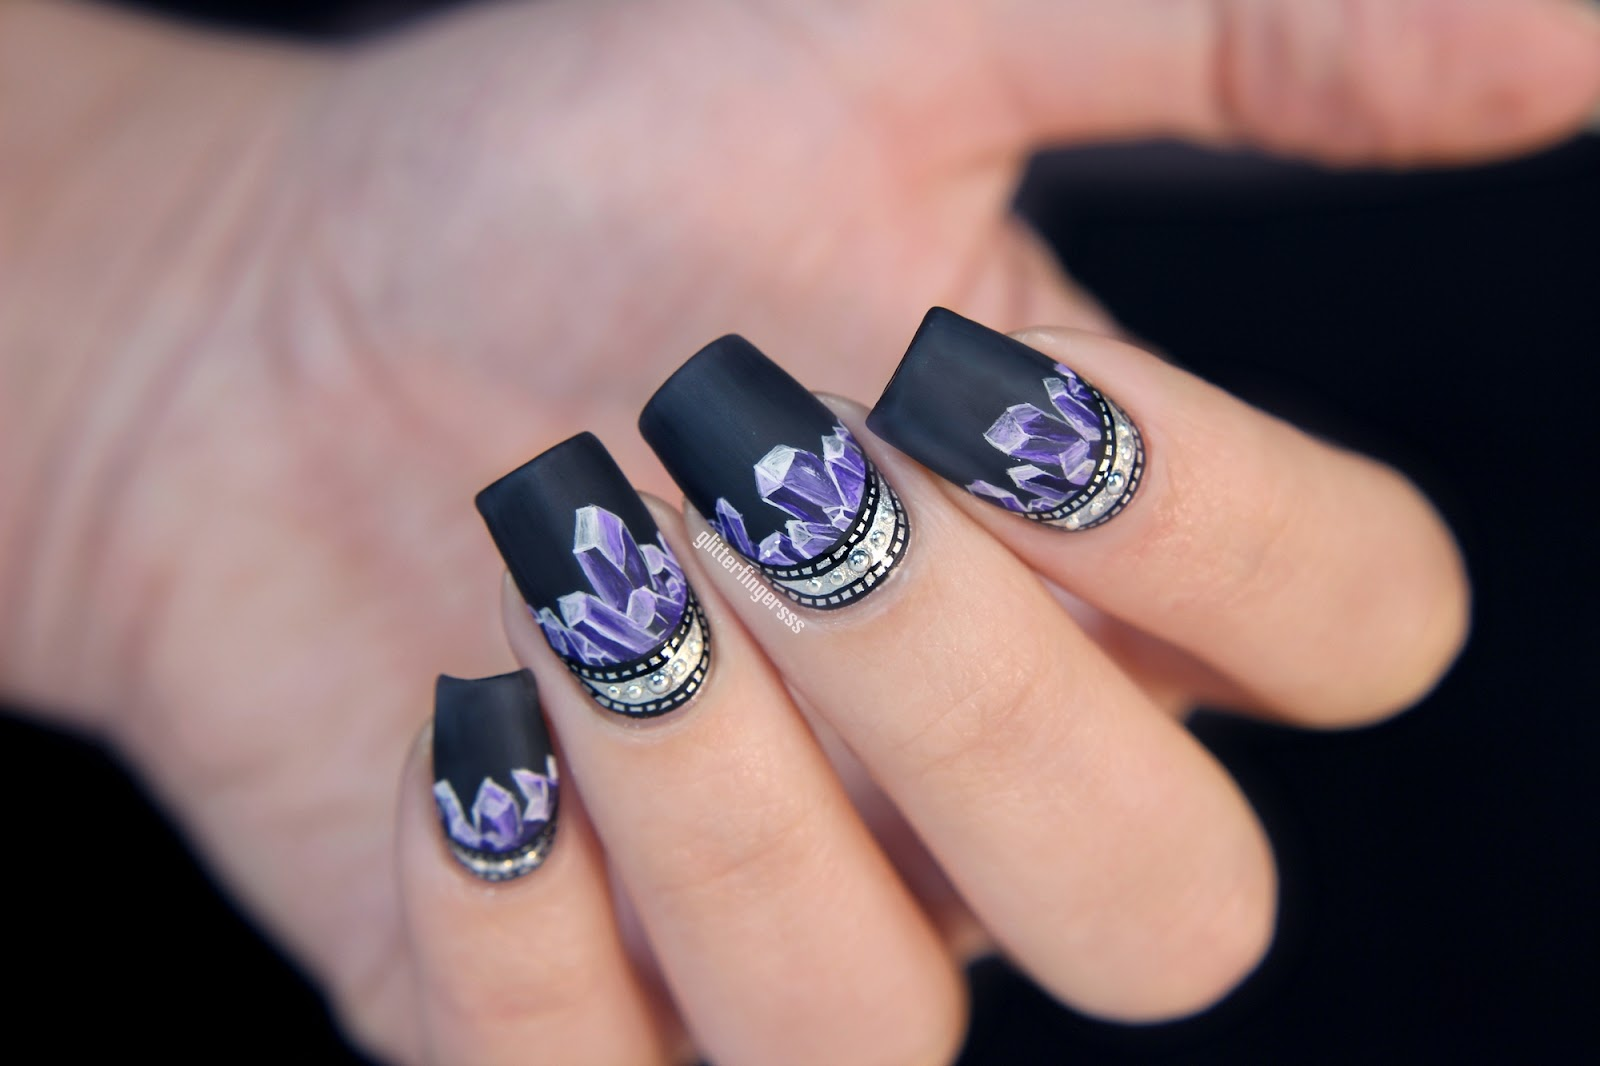 NAIL ART | The forever inspiring amethyst ~ Glitterfingersss in english